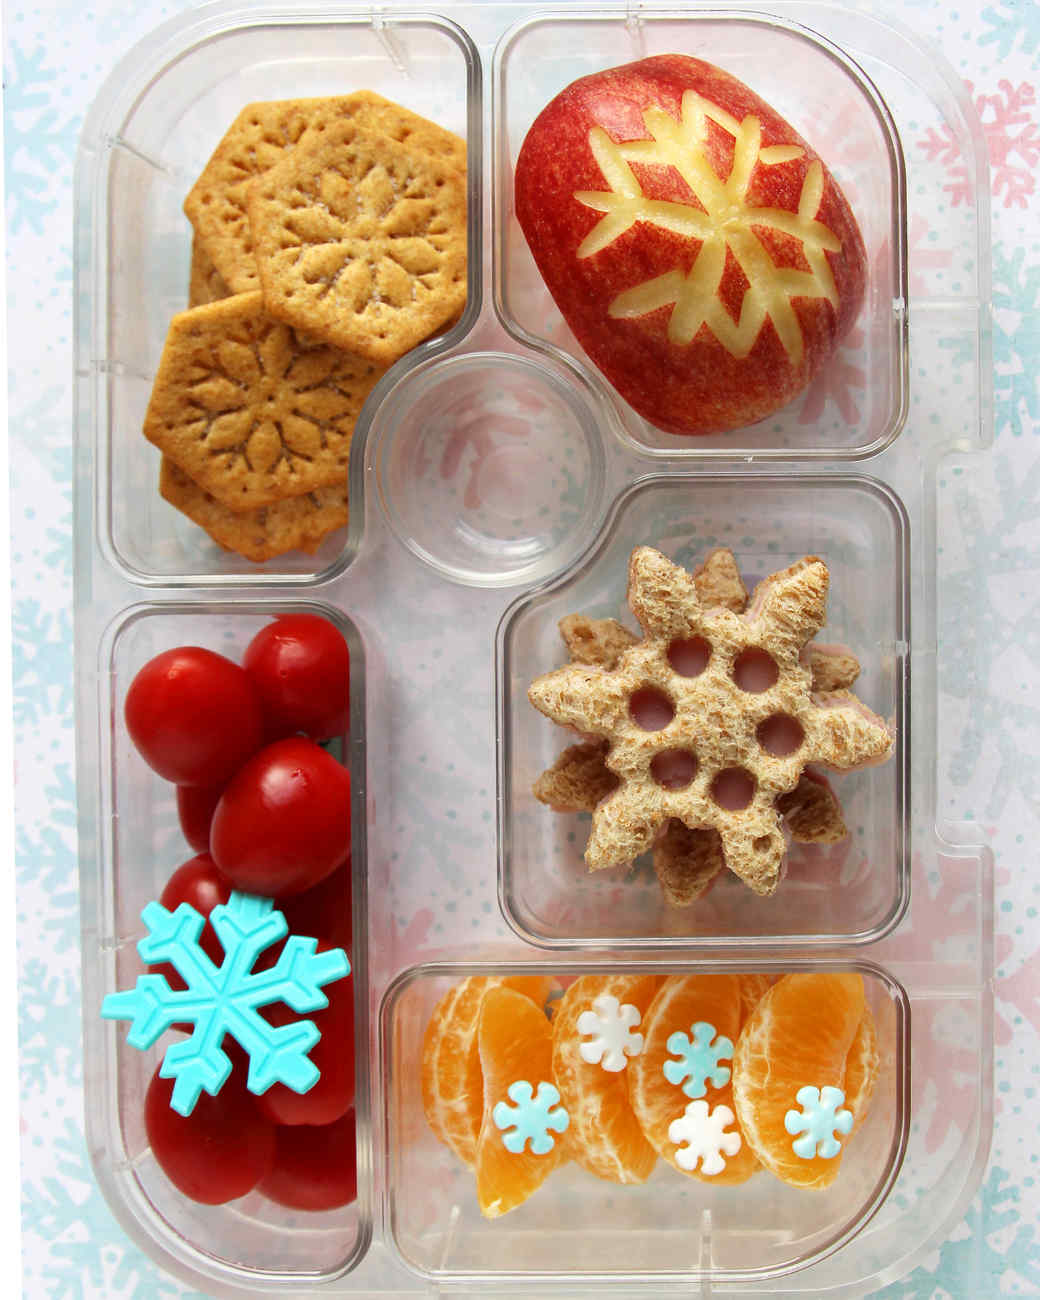 Lunch In A Box 12 Super Cool Kids Bento Box Lunches You Can Actually Make